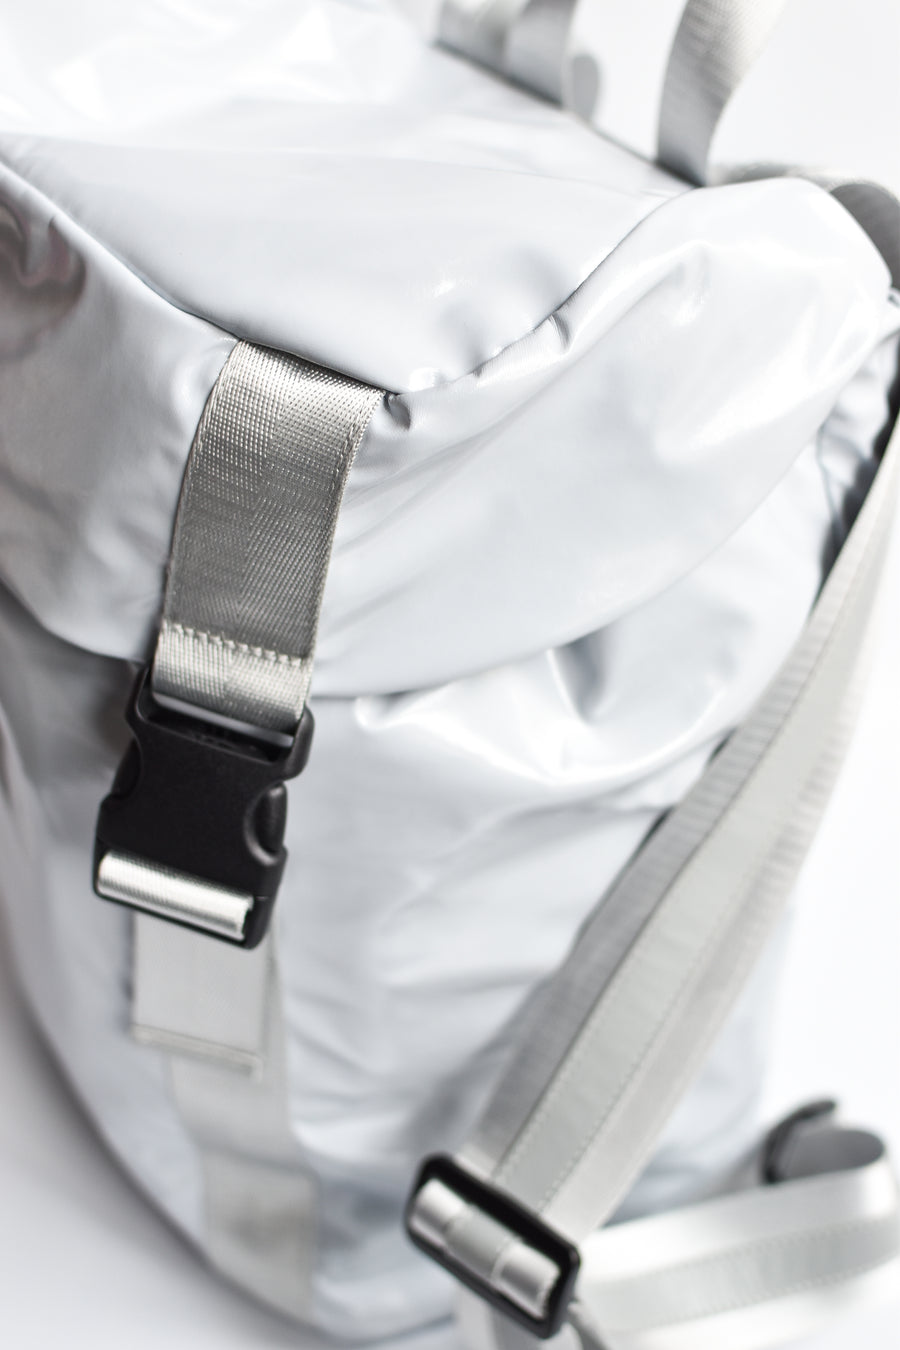 Side view of gray high gloss backpack with gray leather and webbing details.